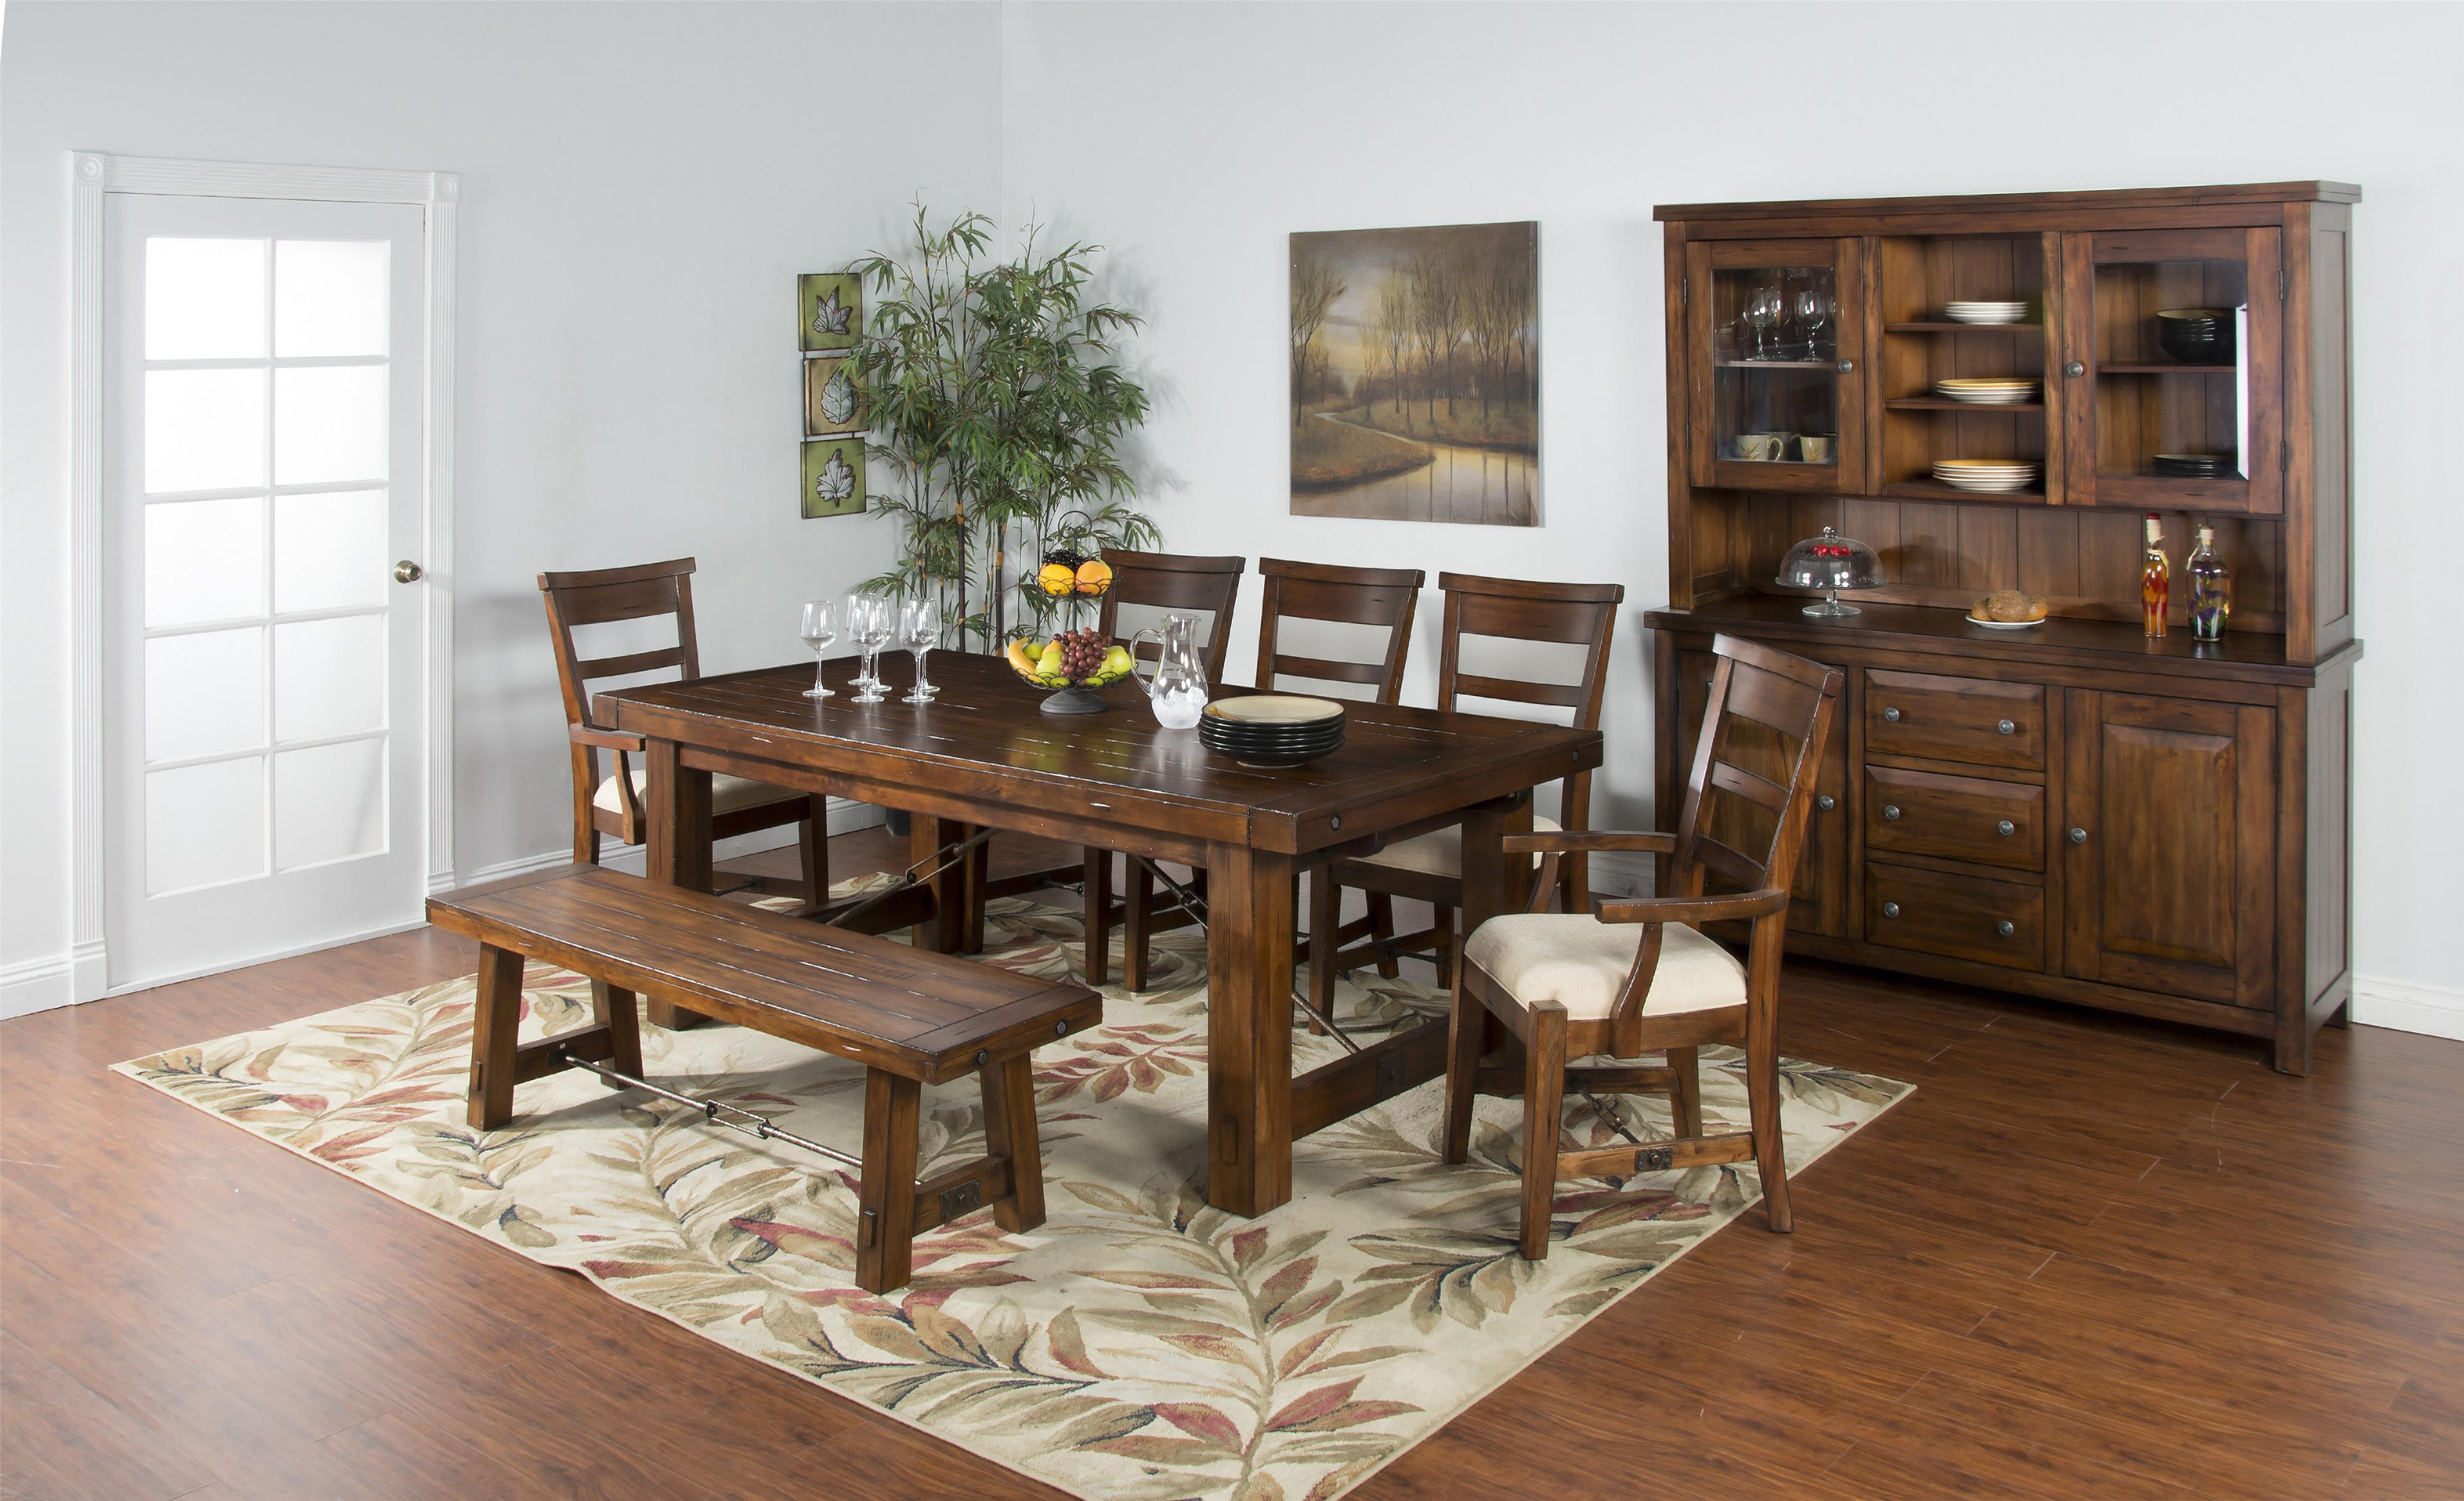 dining bench with wood seat and metal turnbuckle stretcher by dining bench with wood seat and metal turnbuckle stretcher